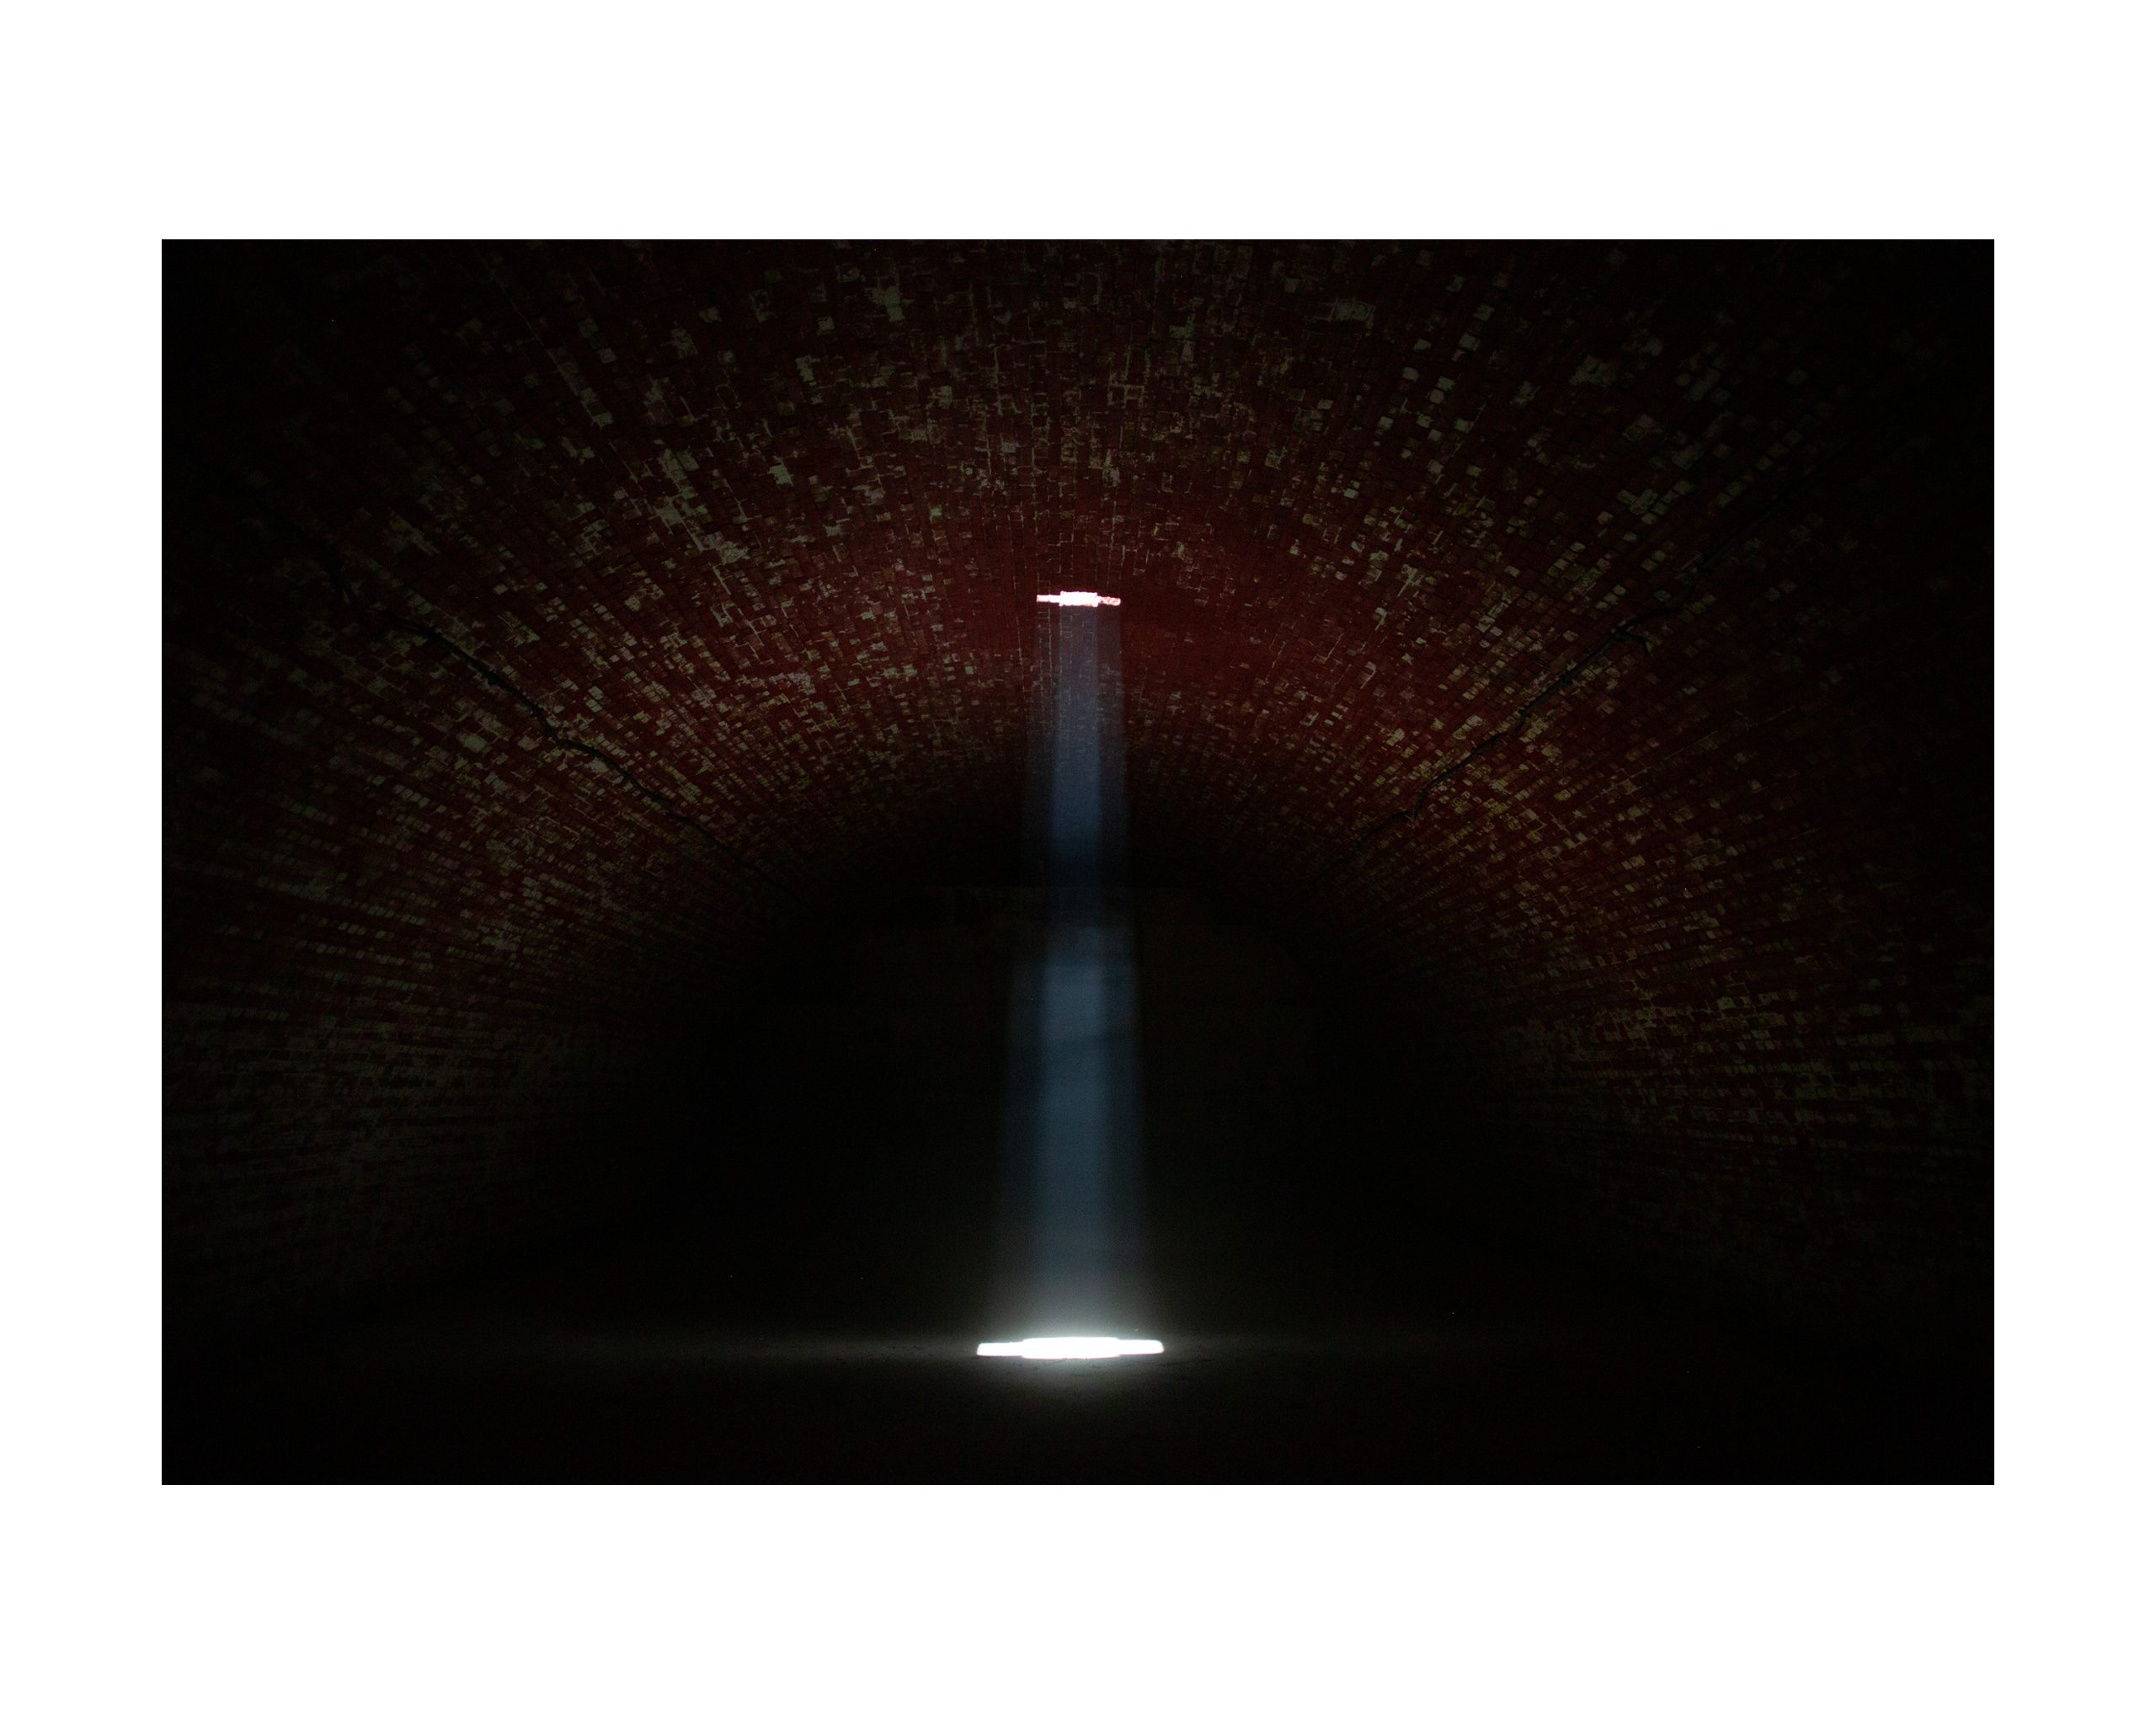 Single ray of light in the center of a dark cave-like room